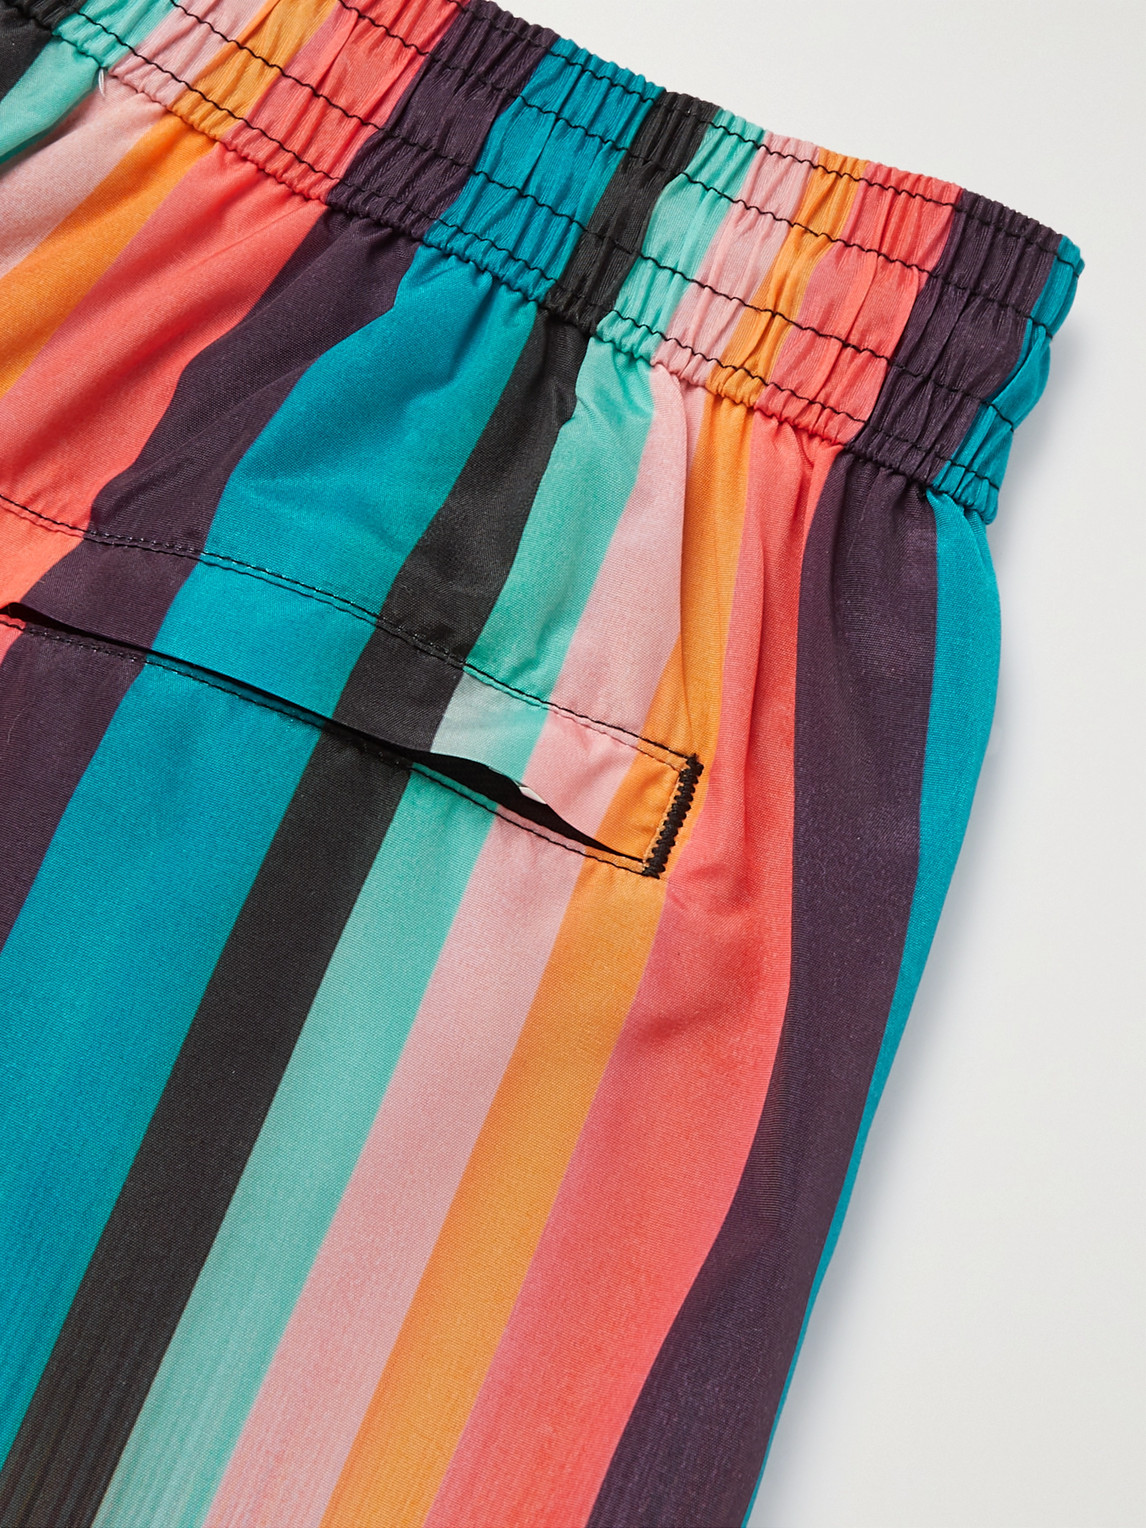 PAUL SMITH Linings MID-LENGTH STRIPED SHELL SWIM SHORTS